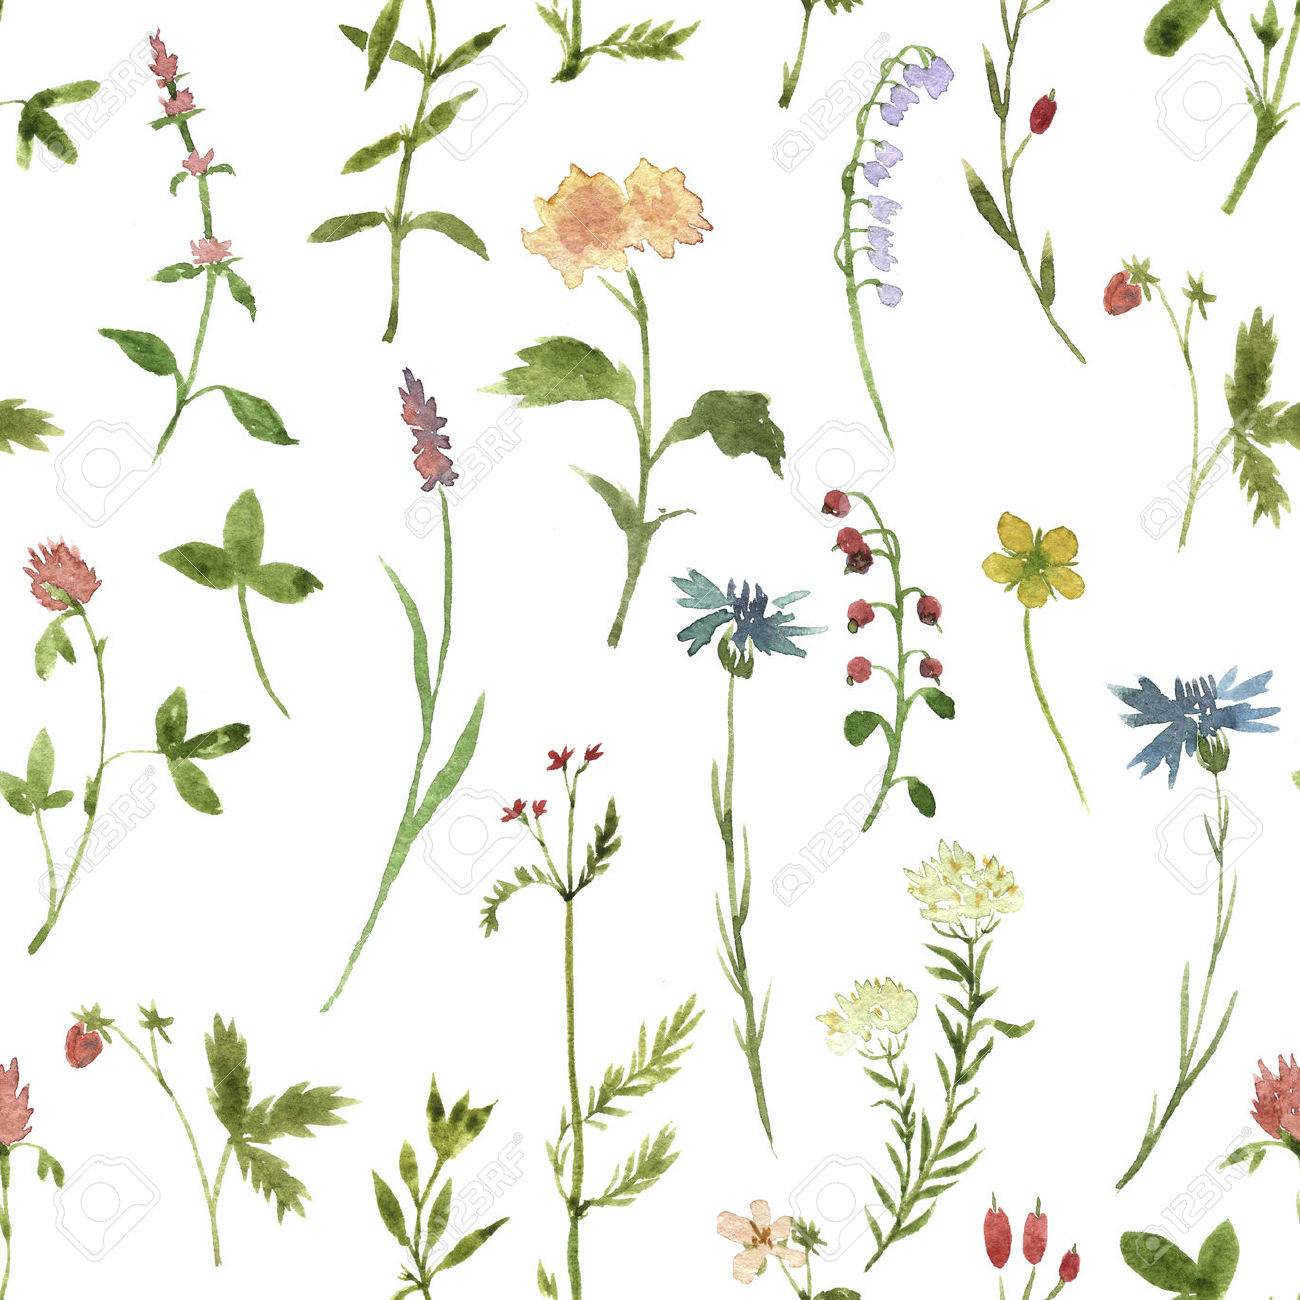 1300x1300 Seamless Floral Pattern With Watercolor Drawing Herbs And Flowers